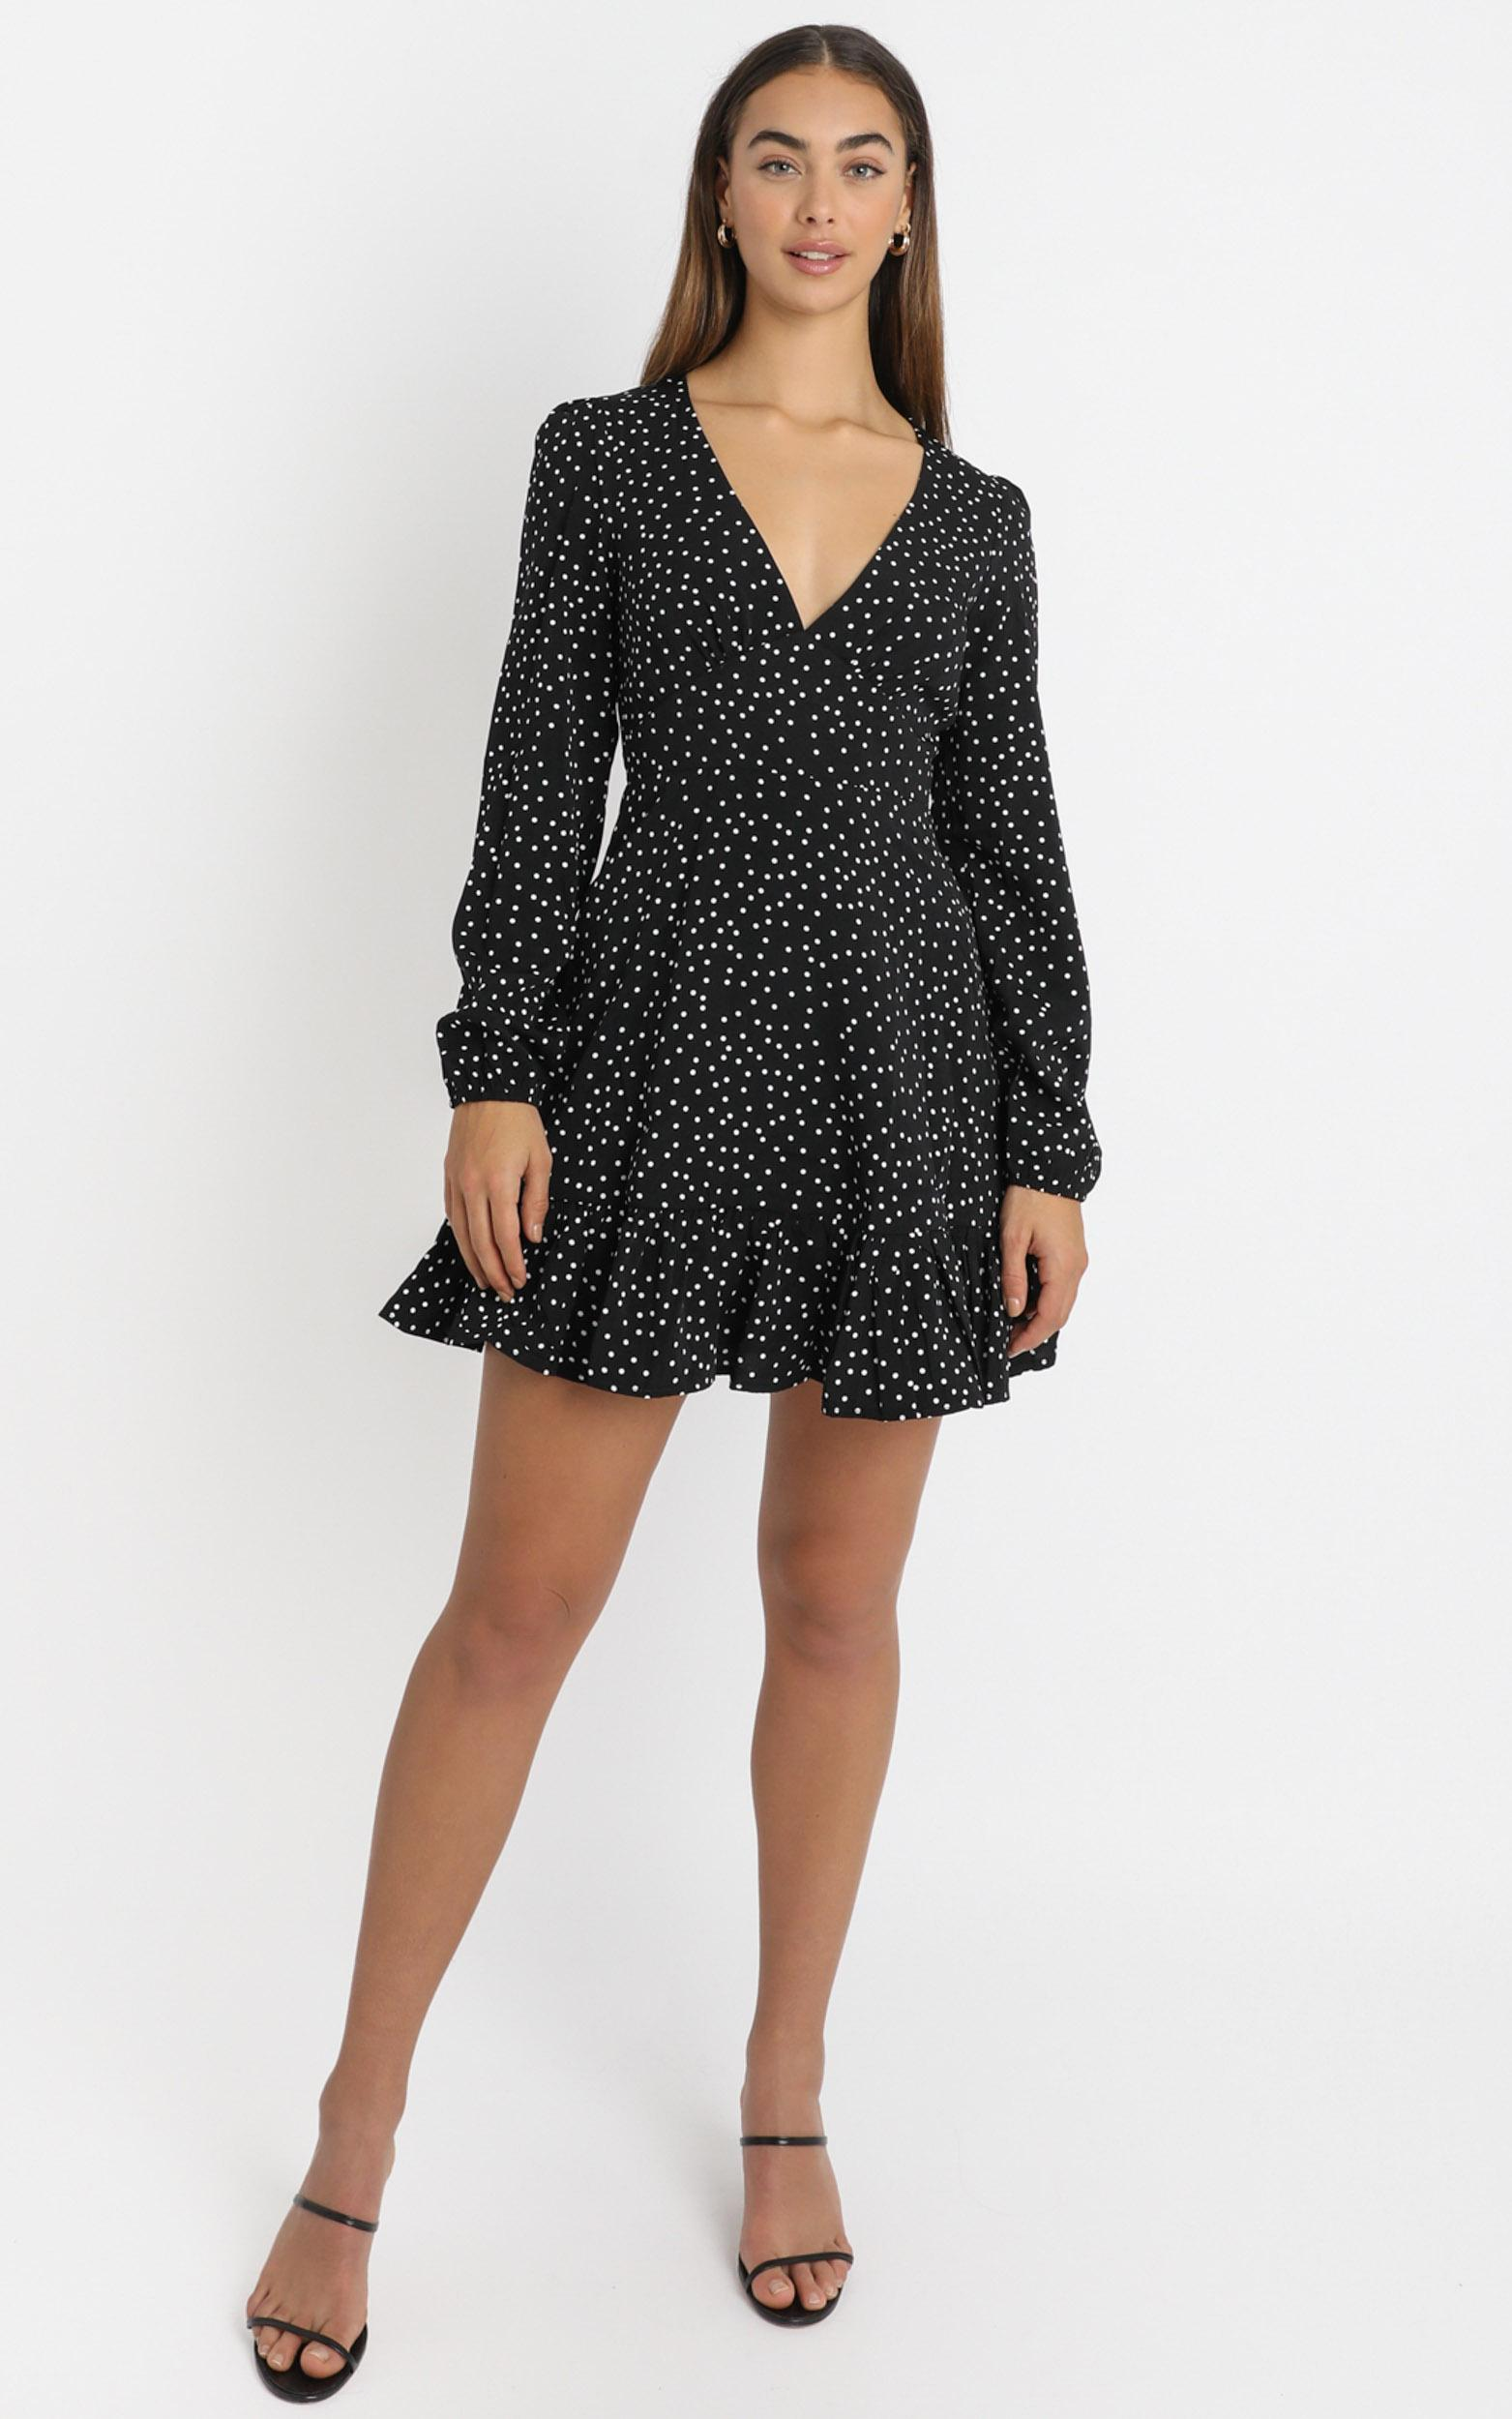 Worlds Away Dress in black polka - 20 (XXXXL), Black, hi-res image number null